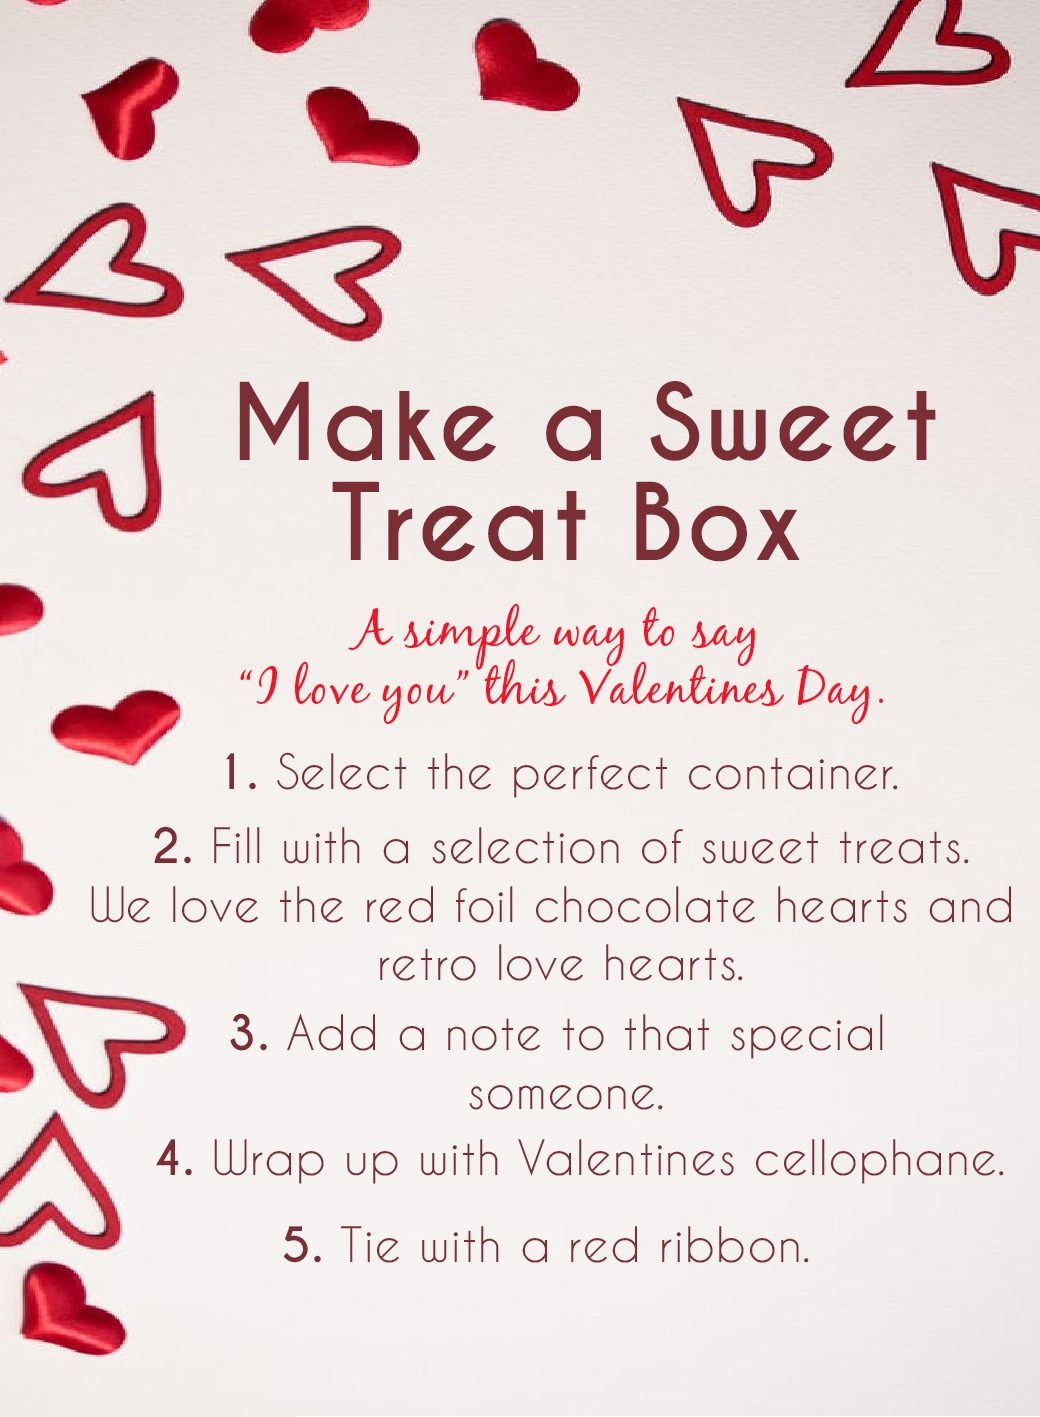 Make a sweet treat box for that special someone